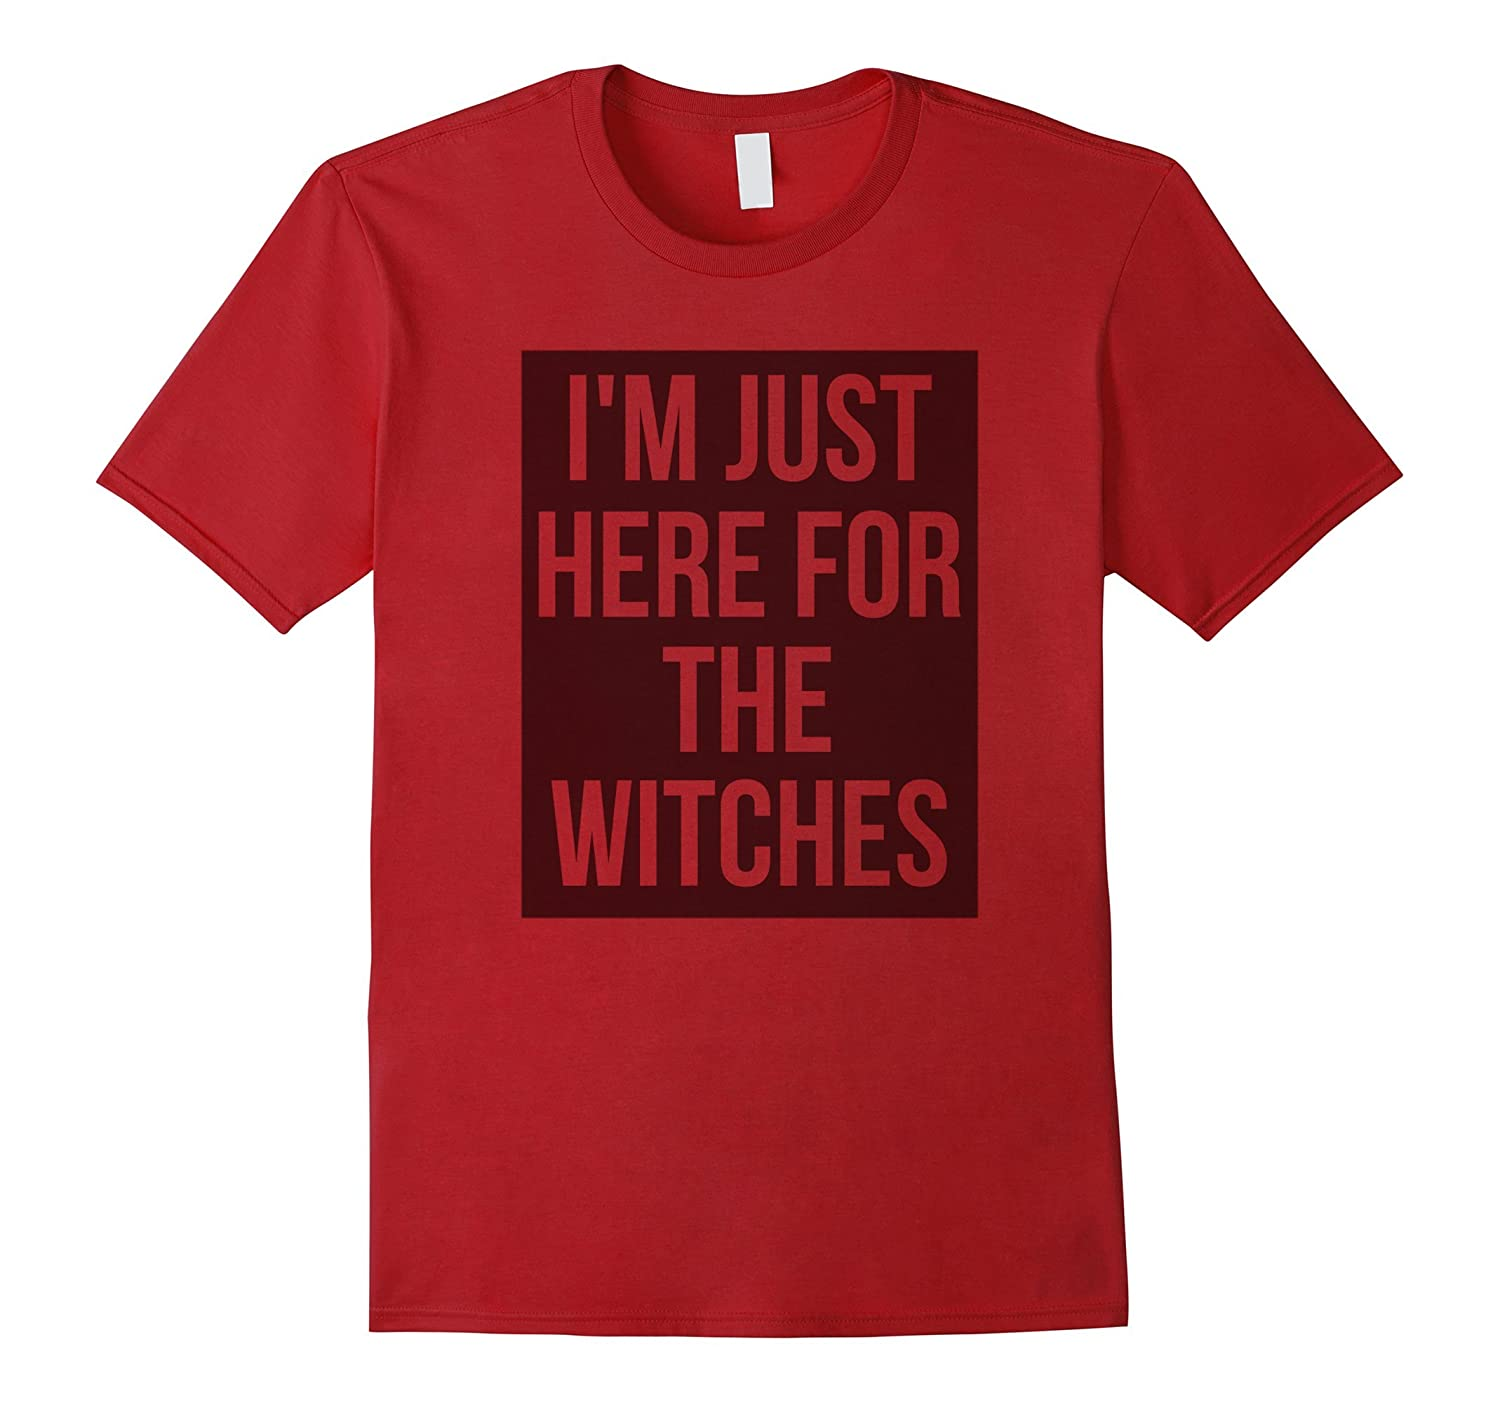 I'M JUST HERE FOR THE WITCHES Funny Halloween Humor T-Shirt-FL